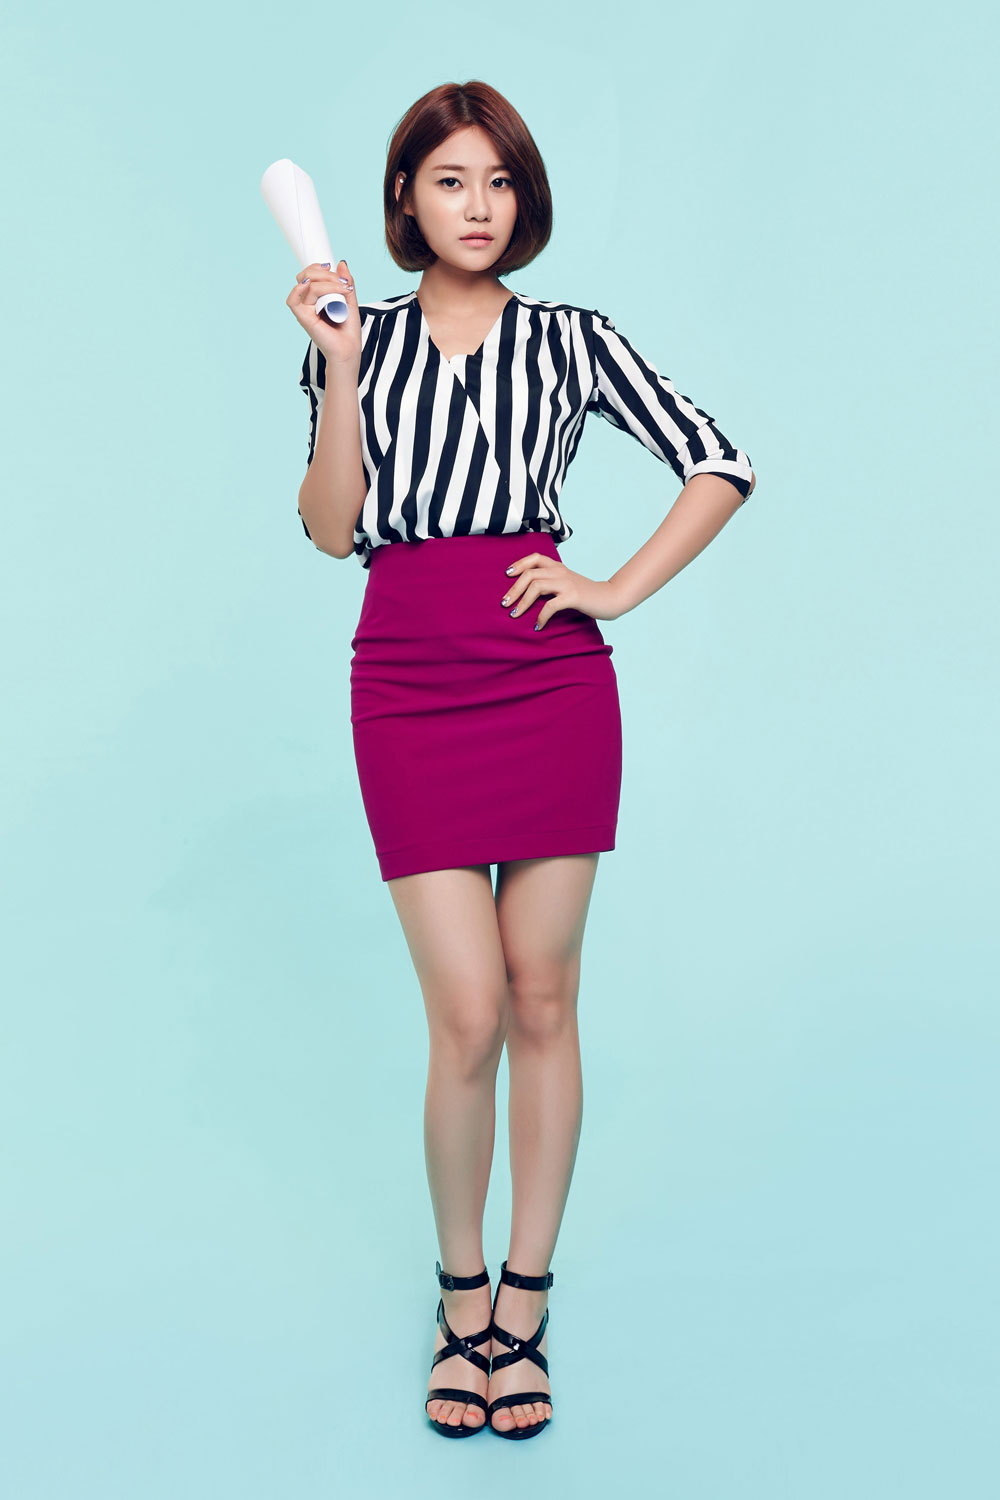 AOA Yuna Short Hair mini album